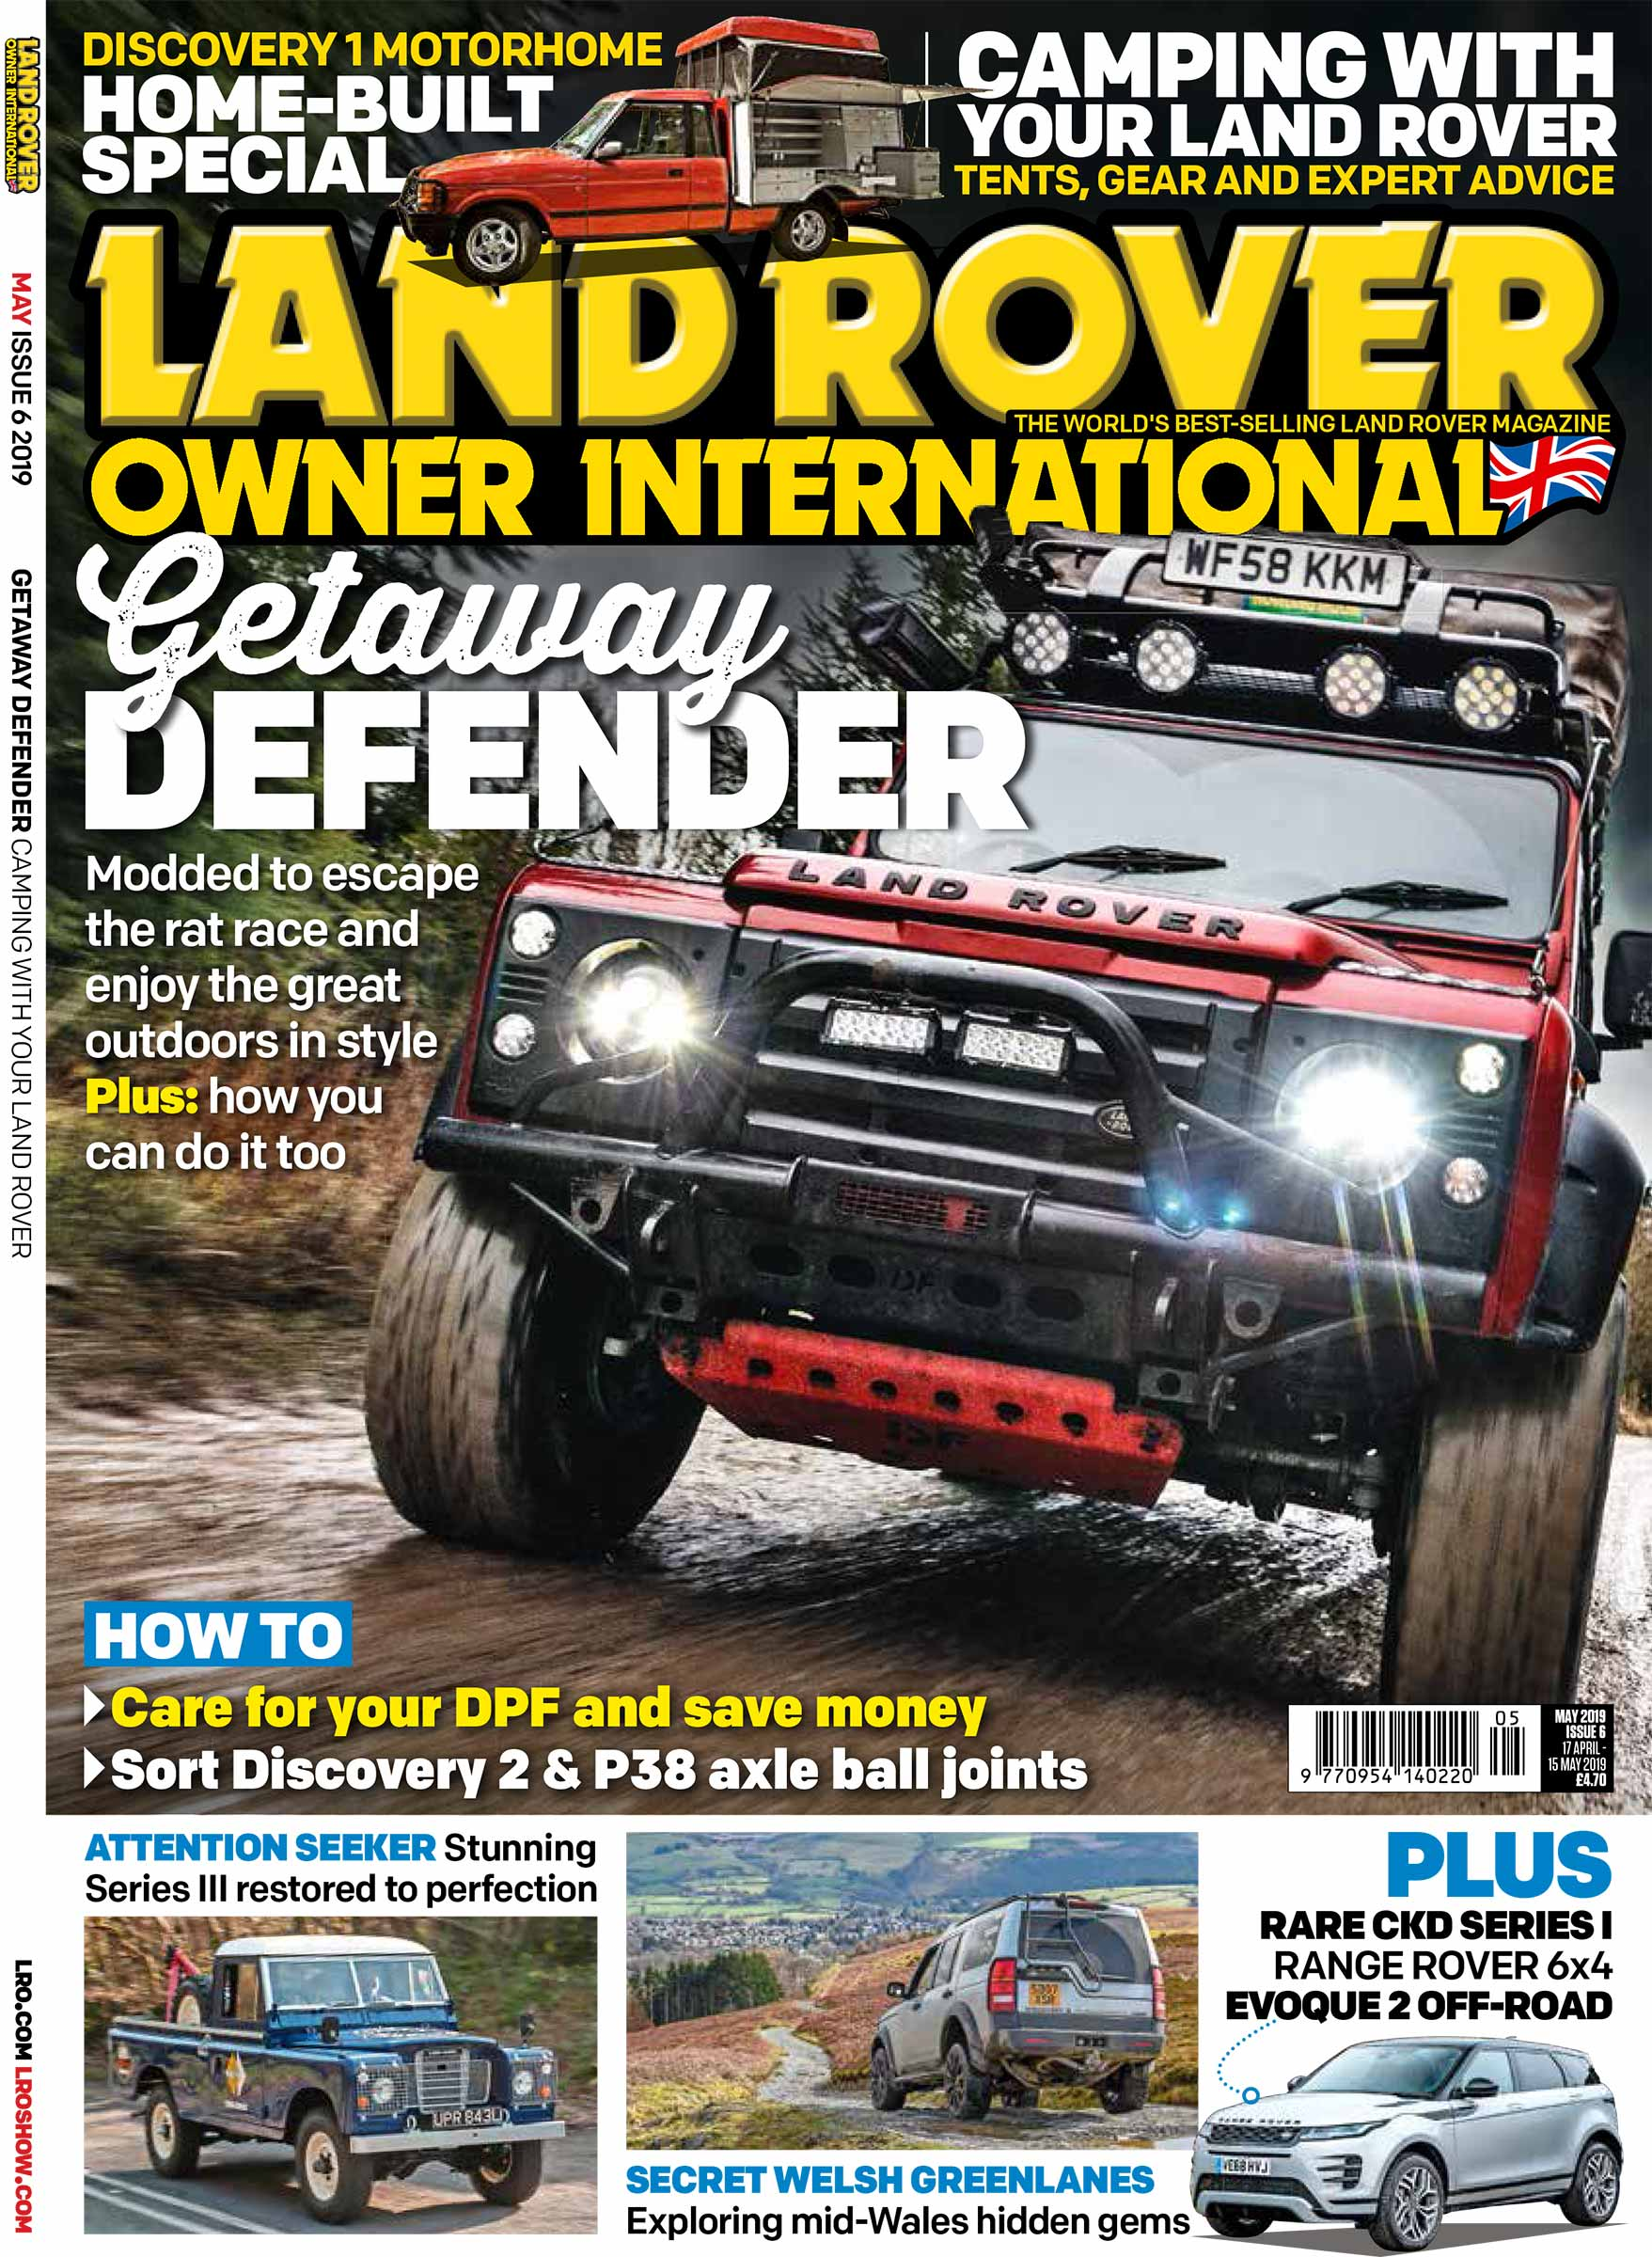 Land Rover Owner magazine May 2019 cover.jpg